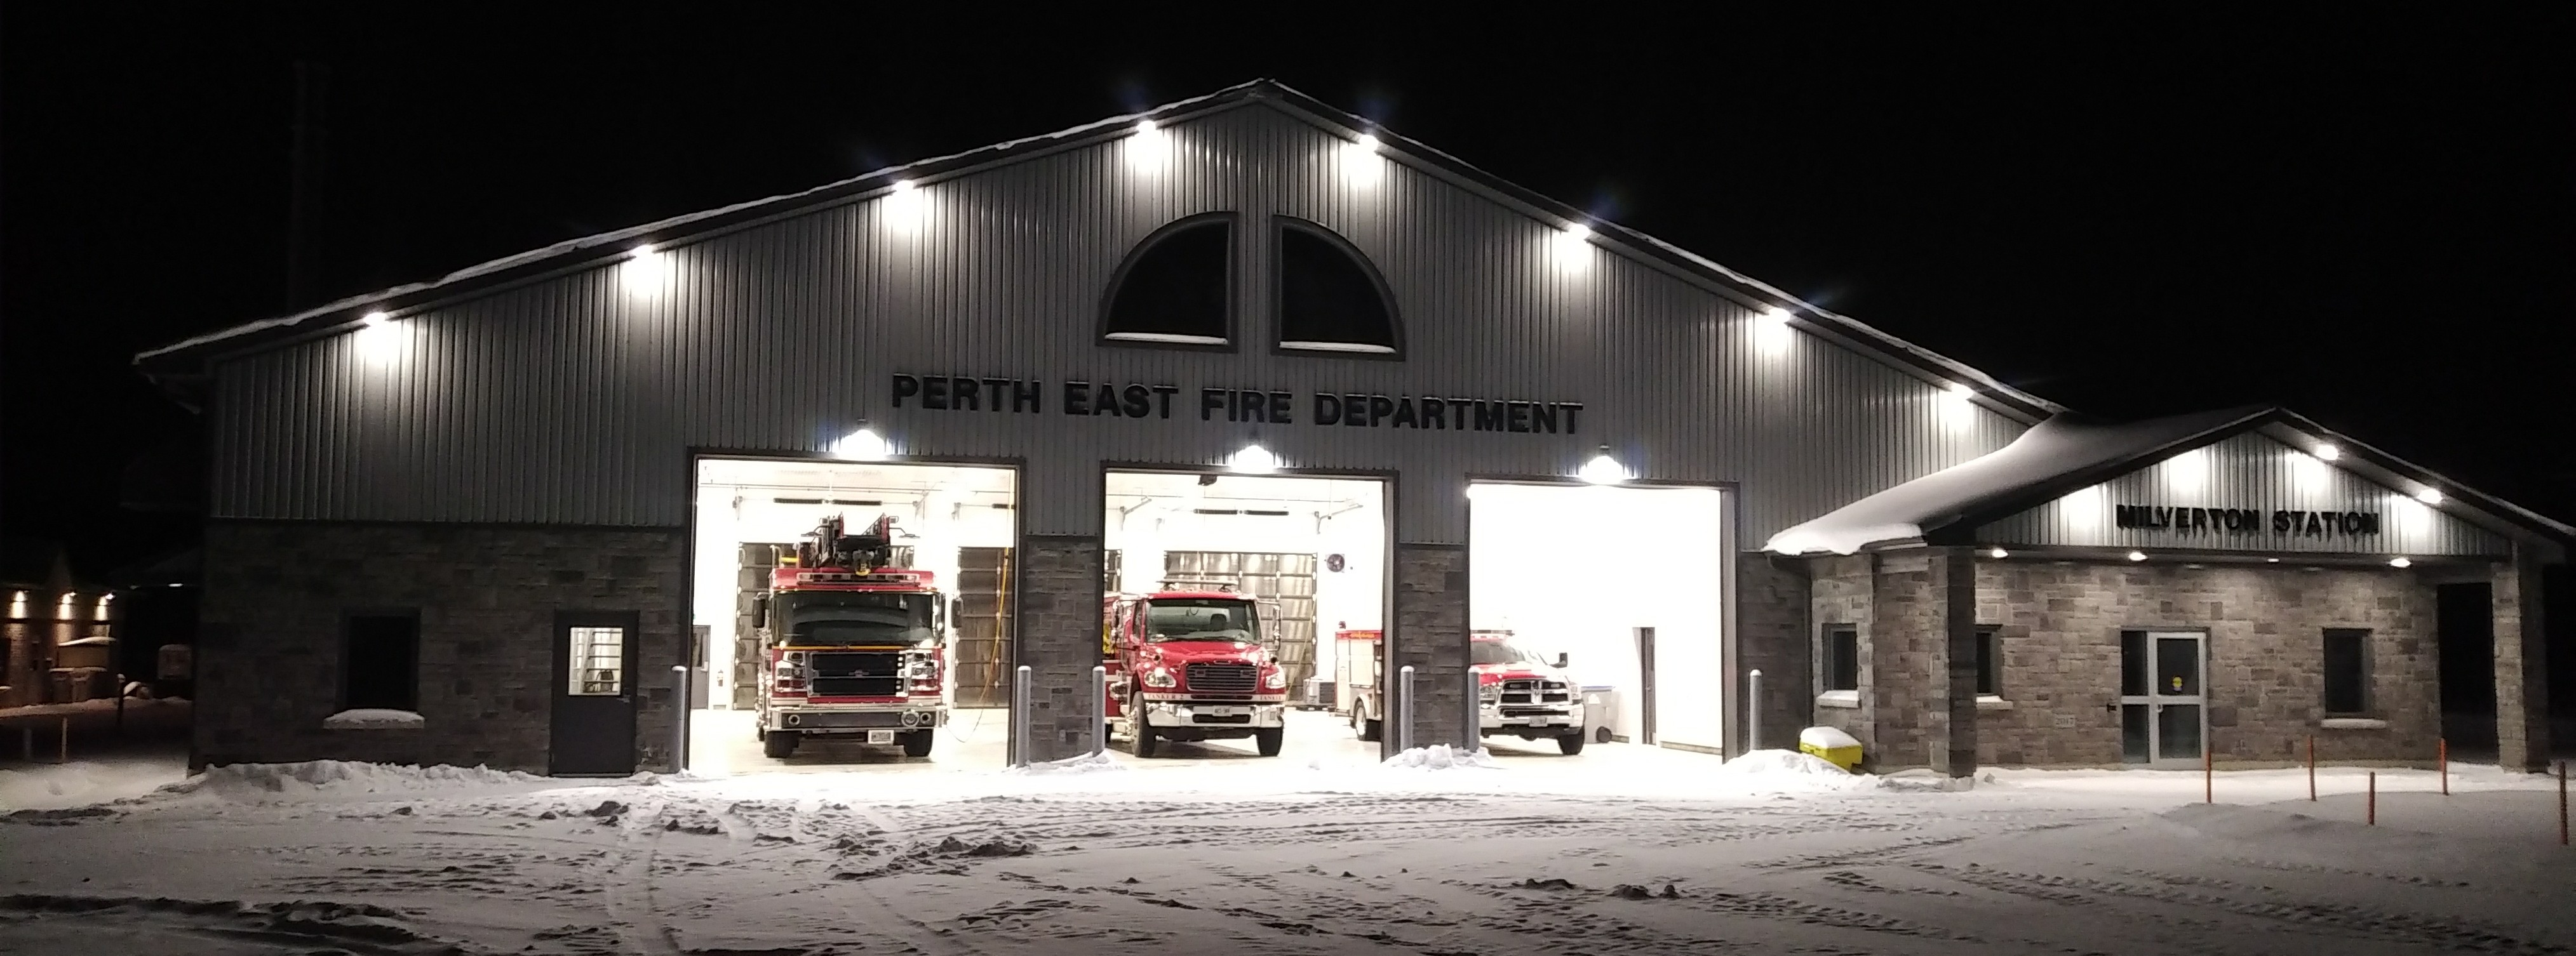 Fire station with the 3 bay doors open and trucks sitting inside